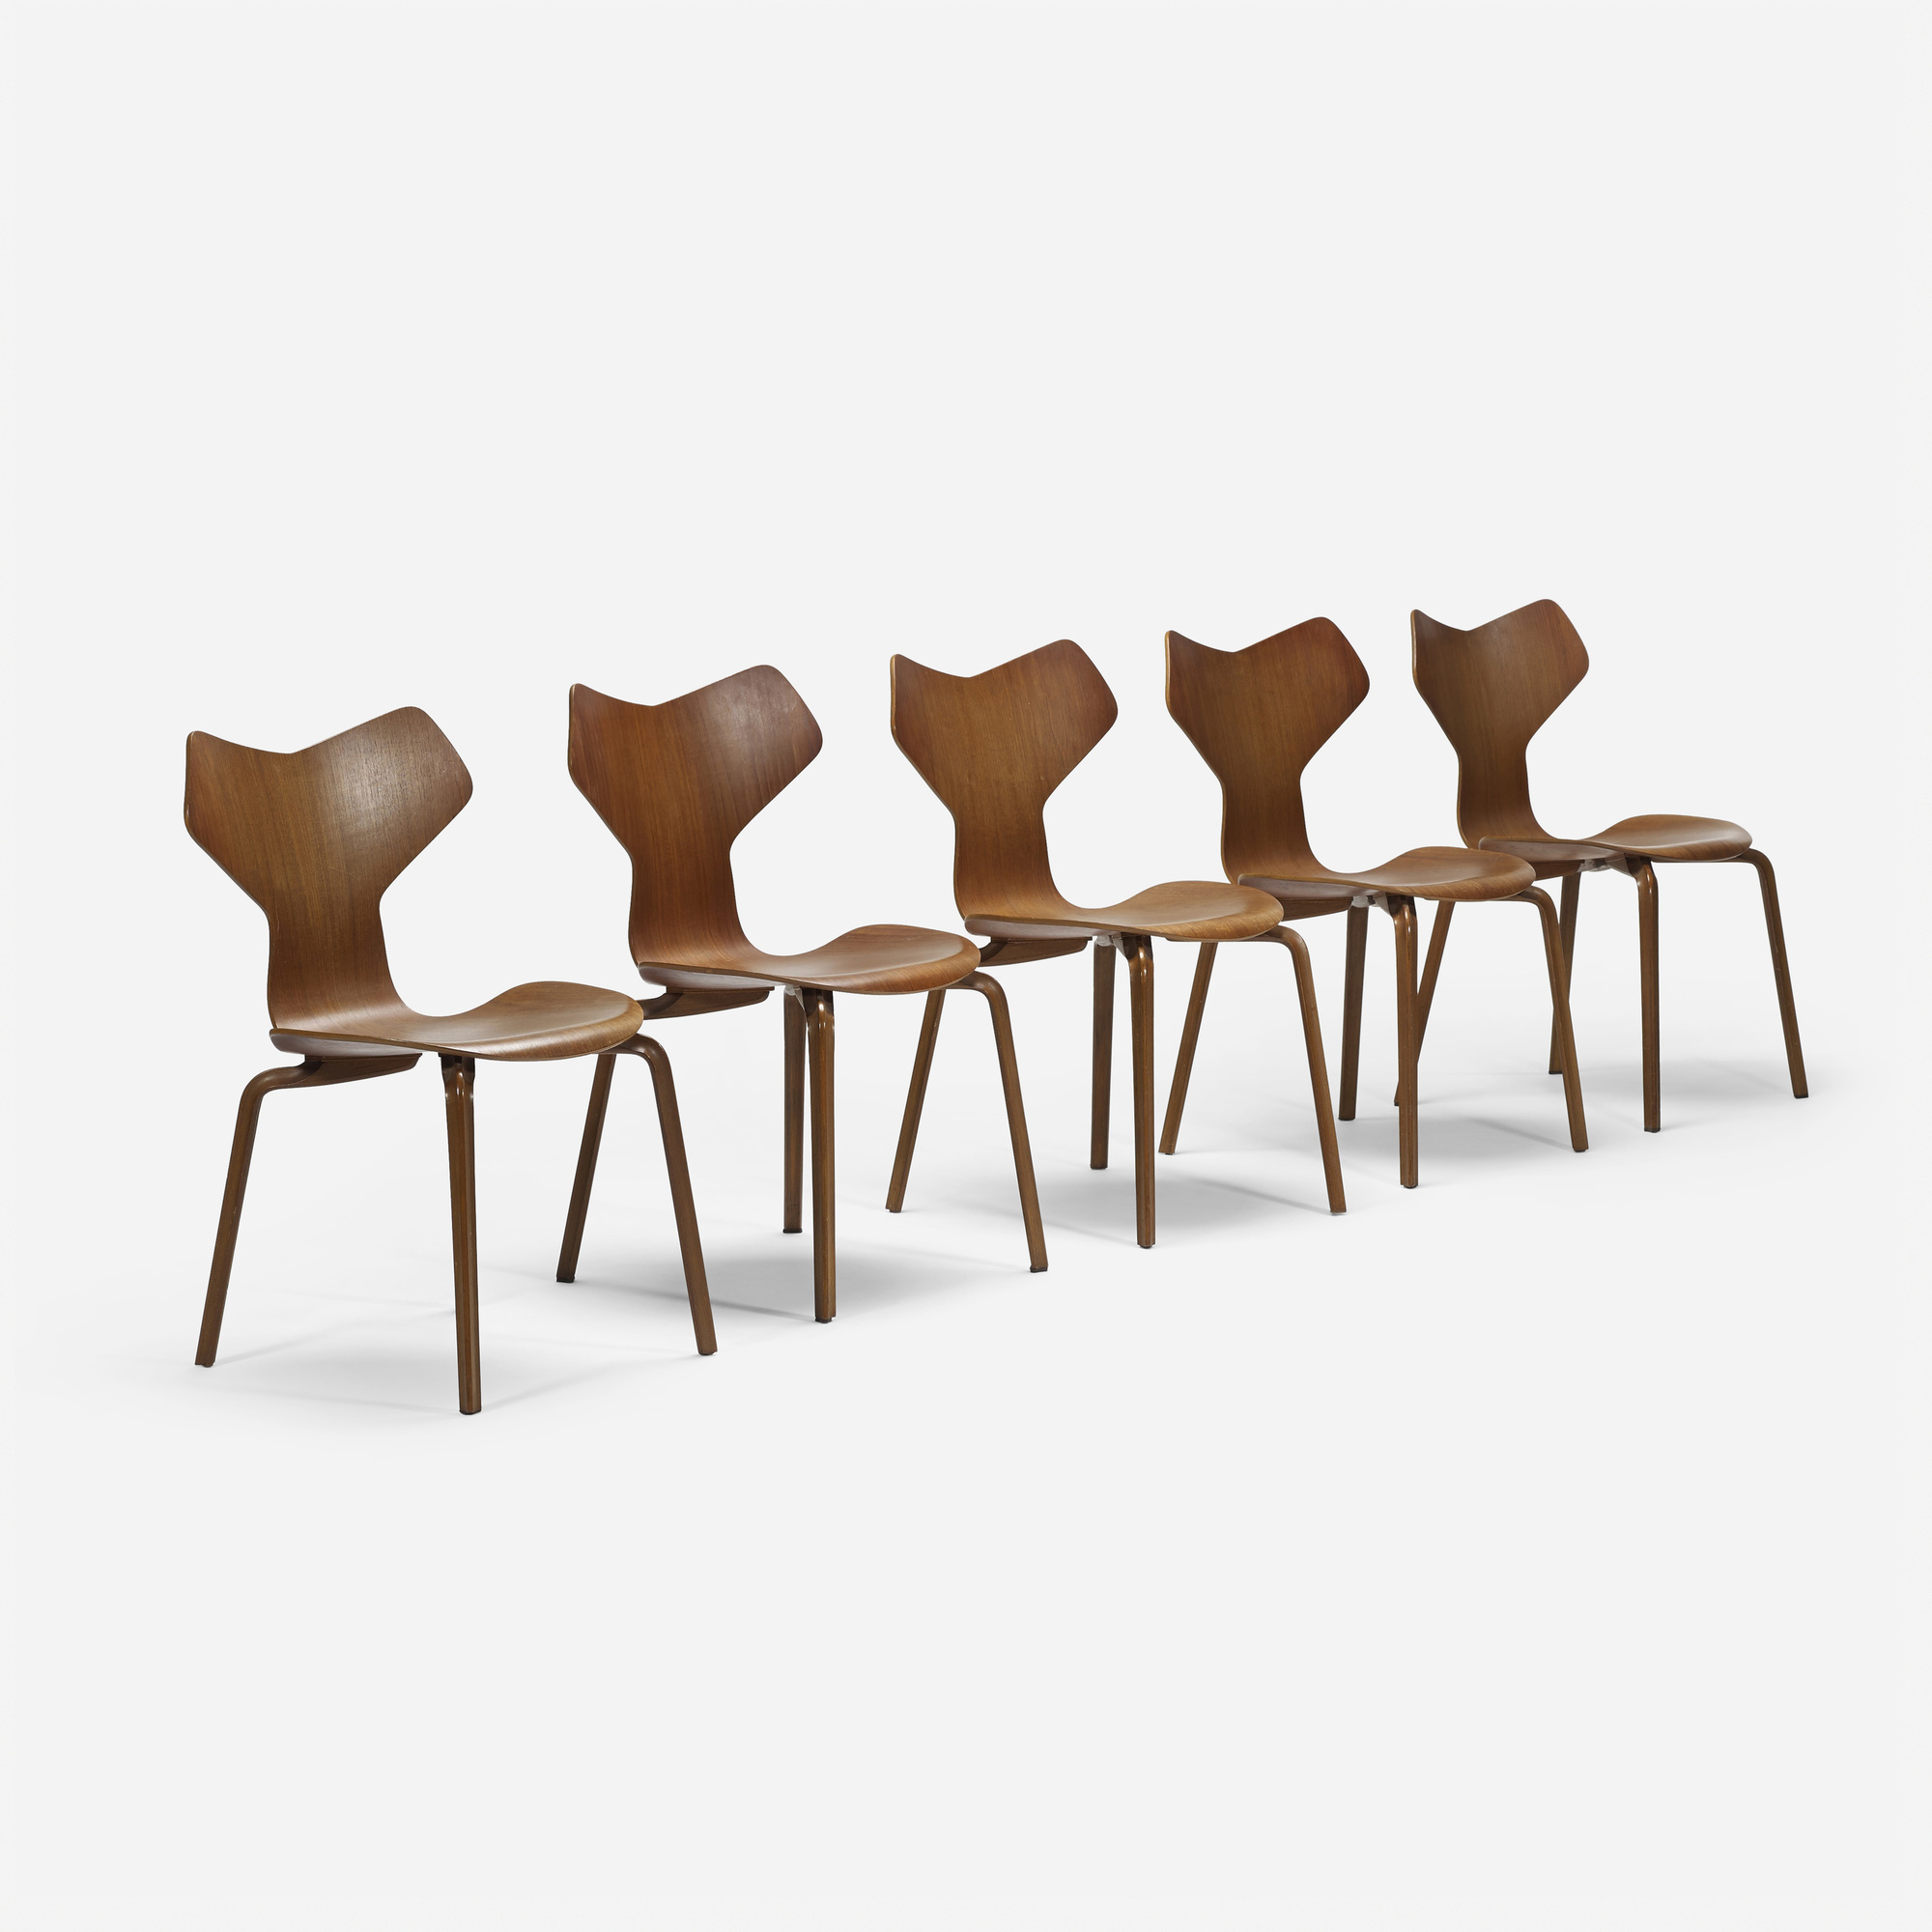 260: Arne Jacobsen / Grand Prix chairs, set of five (1 of 4)